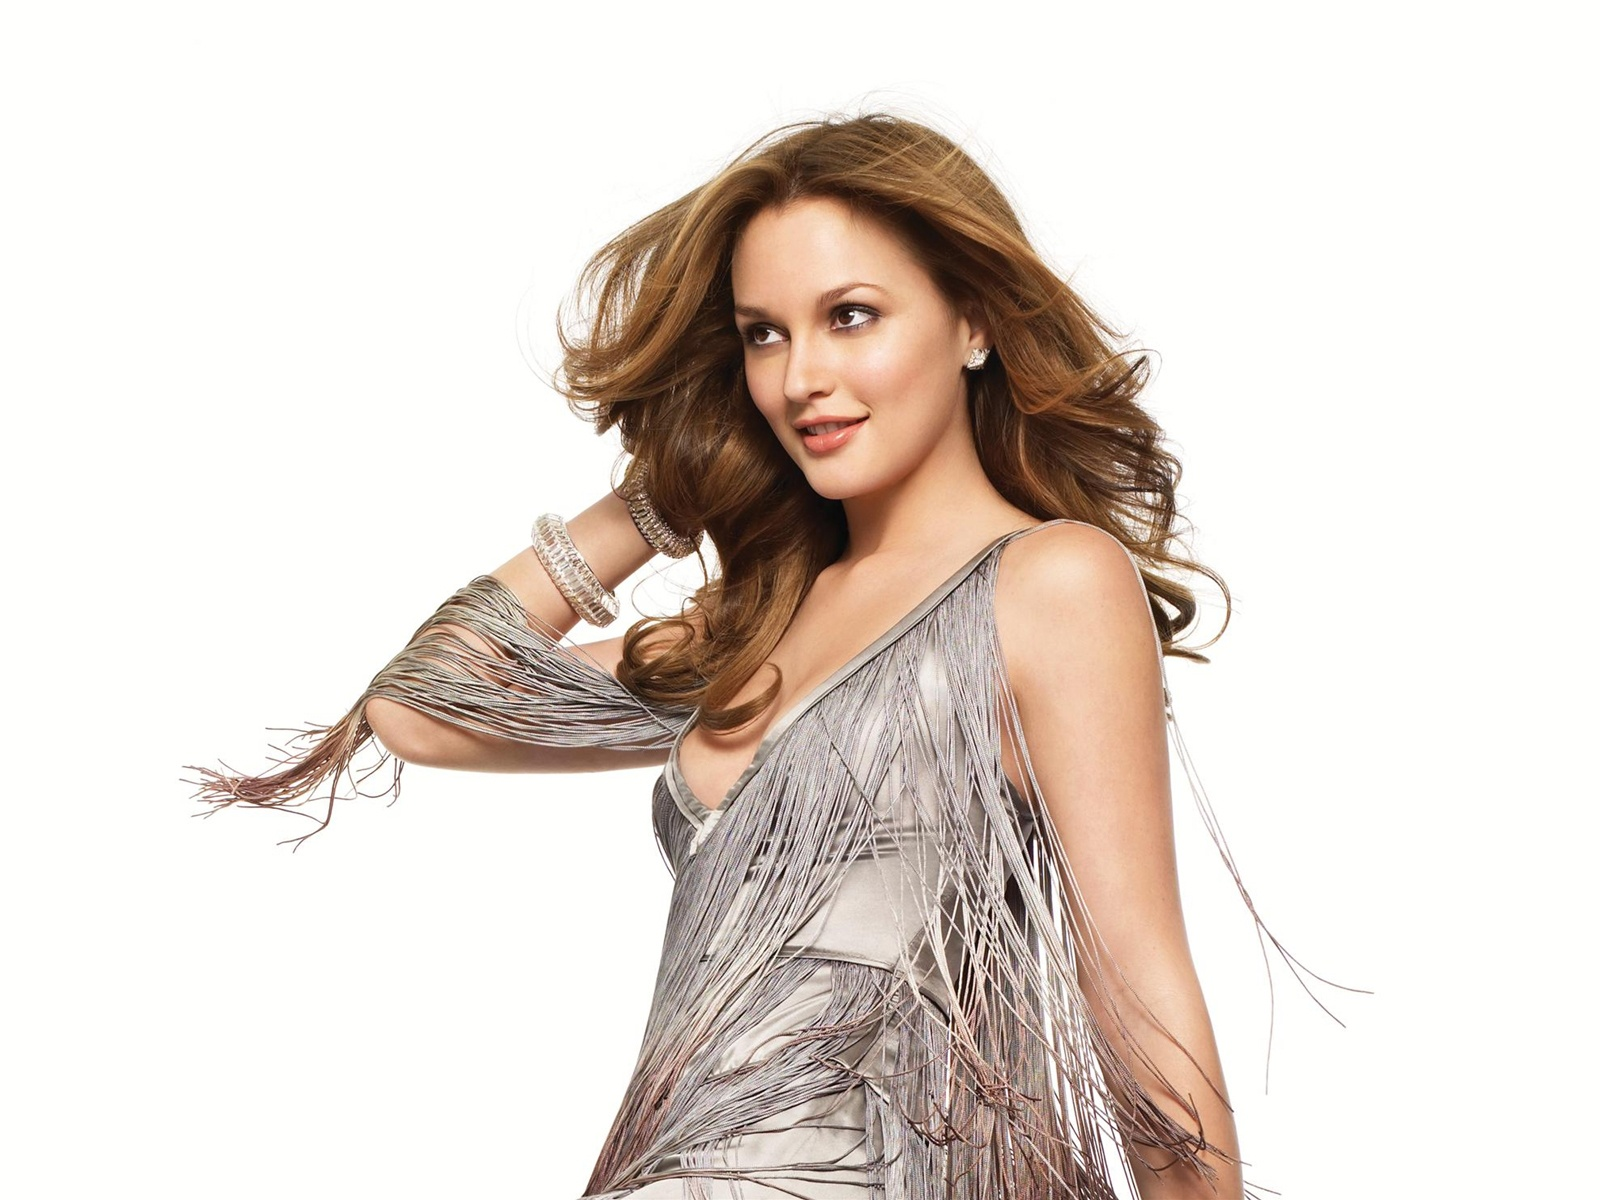 leighton meester wallpapers hd A1